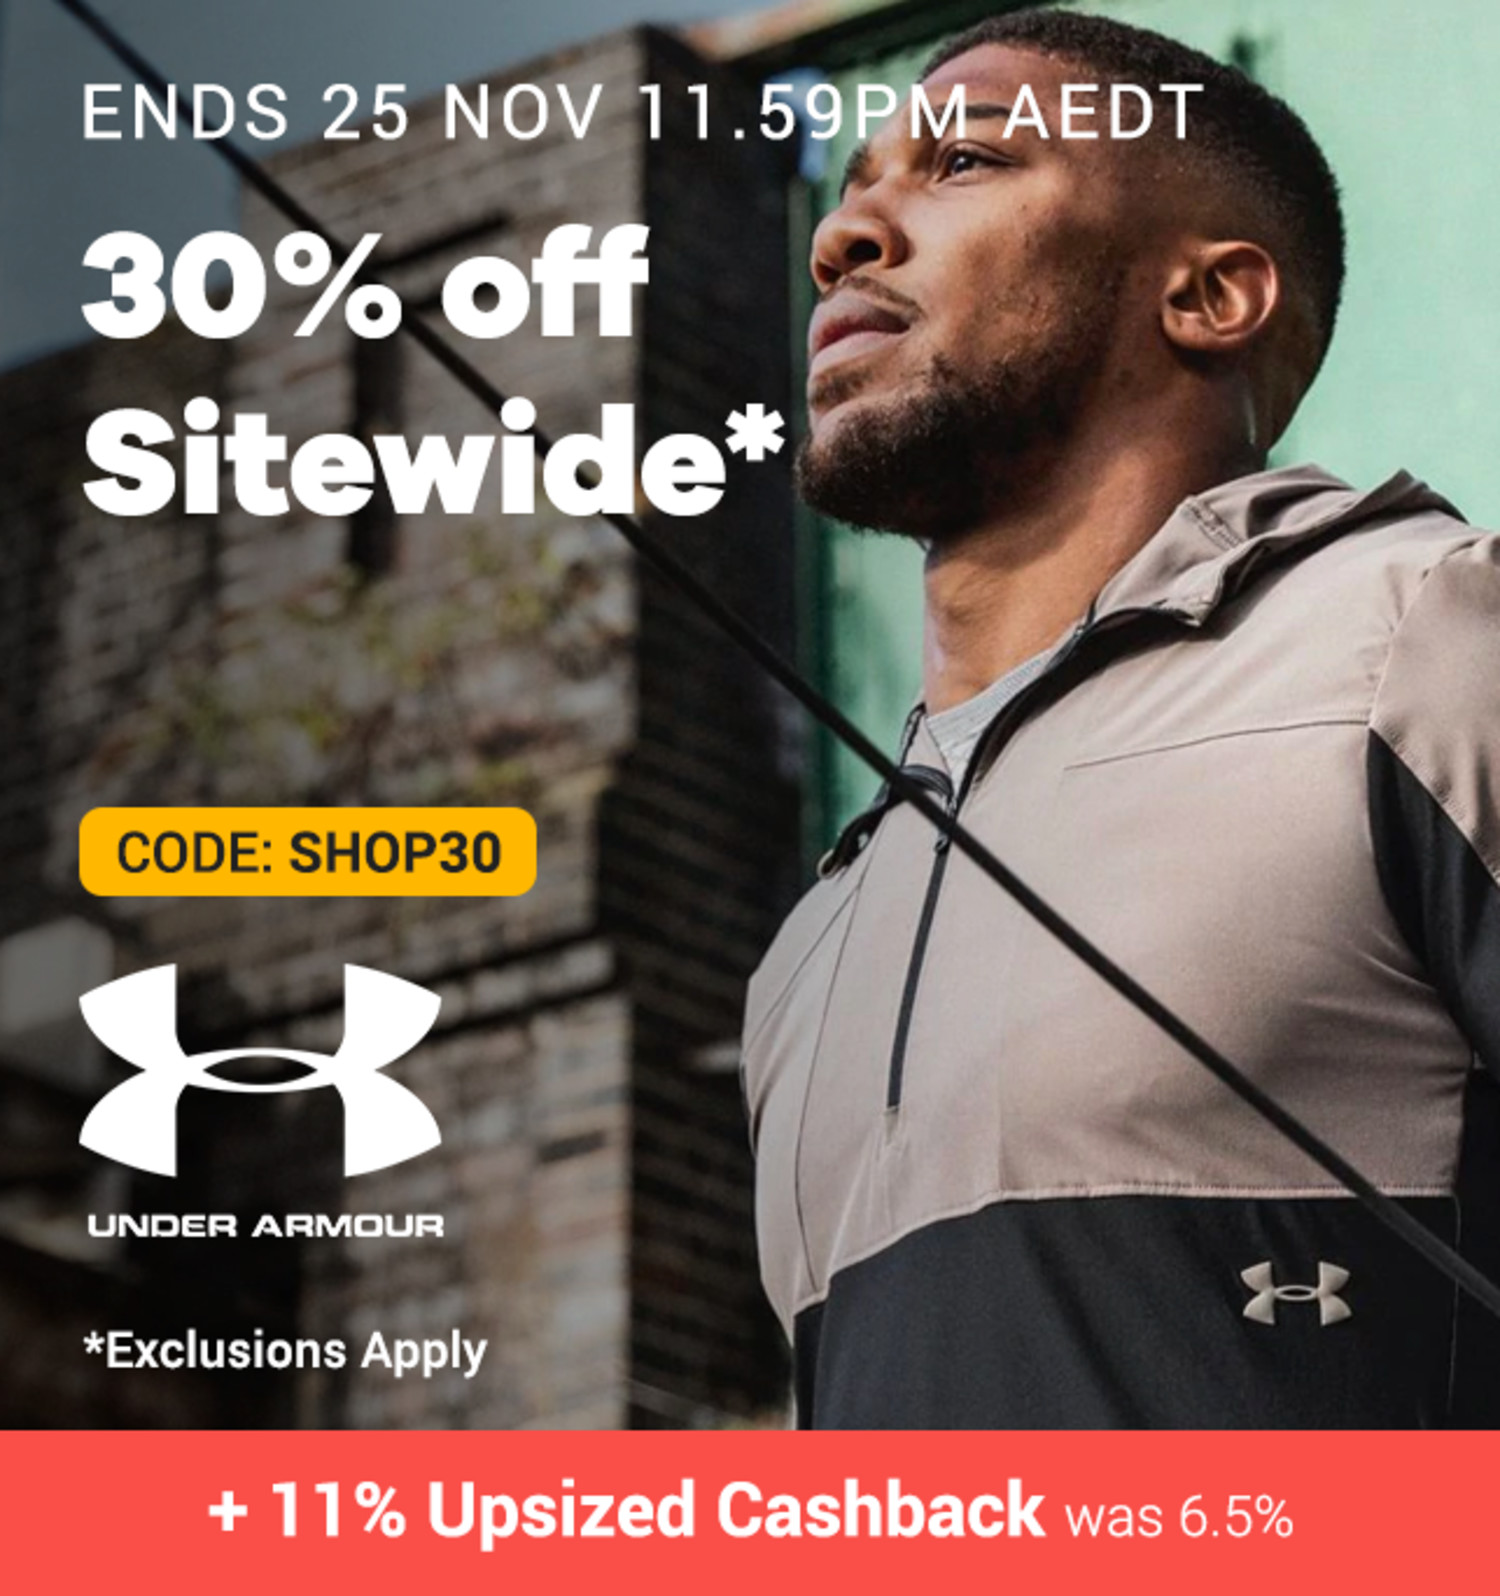 Under Armour - 30% off Sitewide